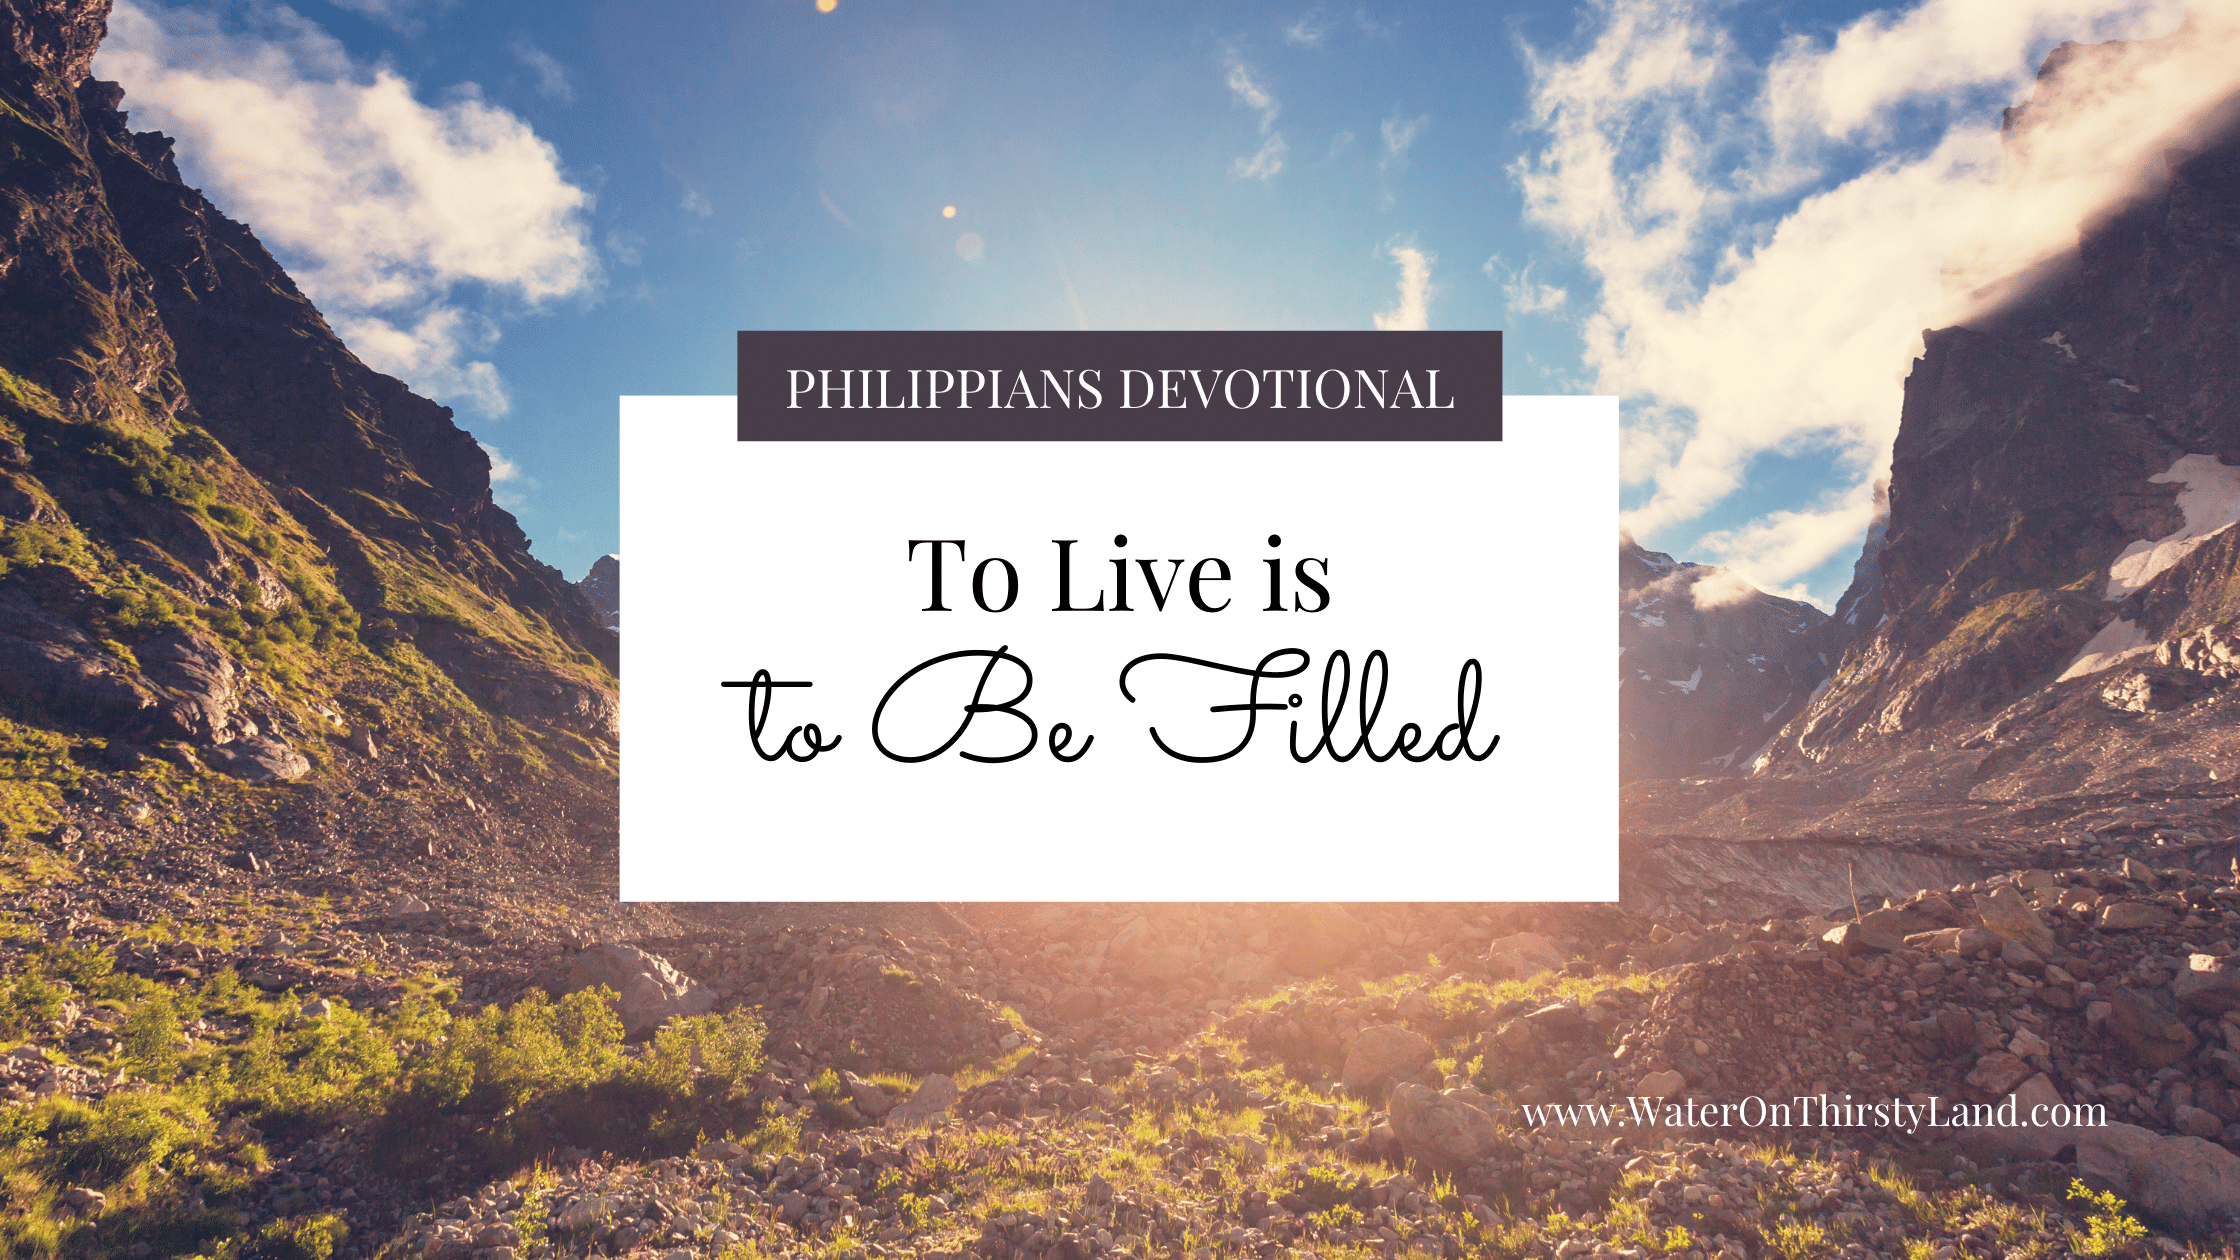 To live is to be filled